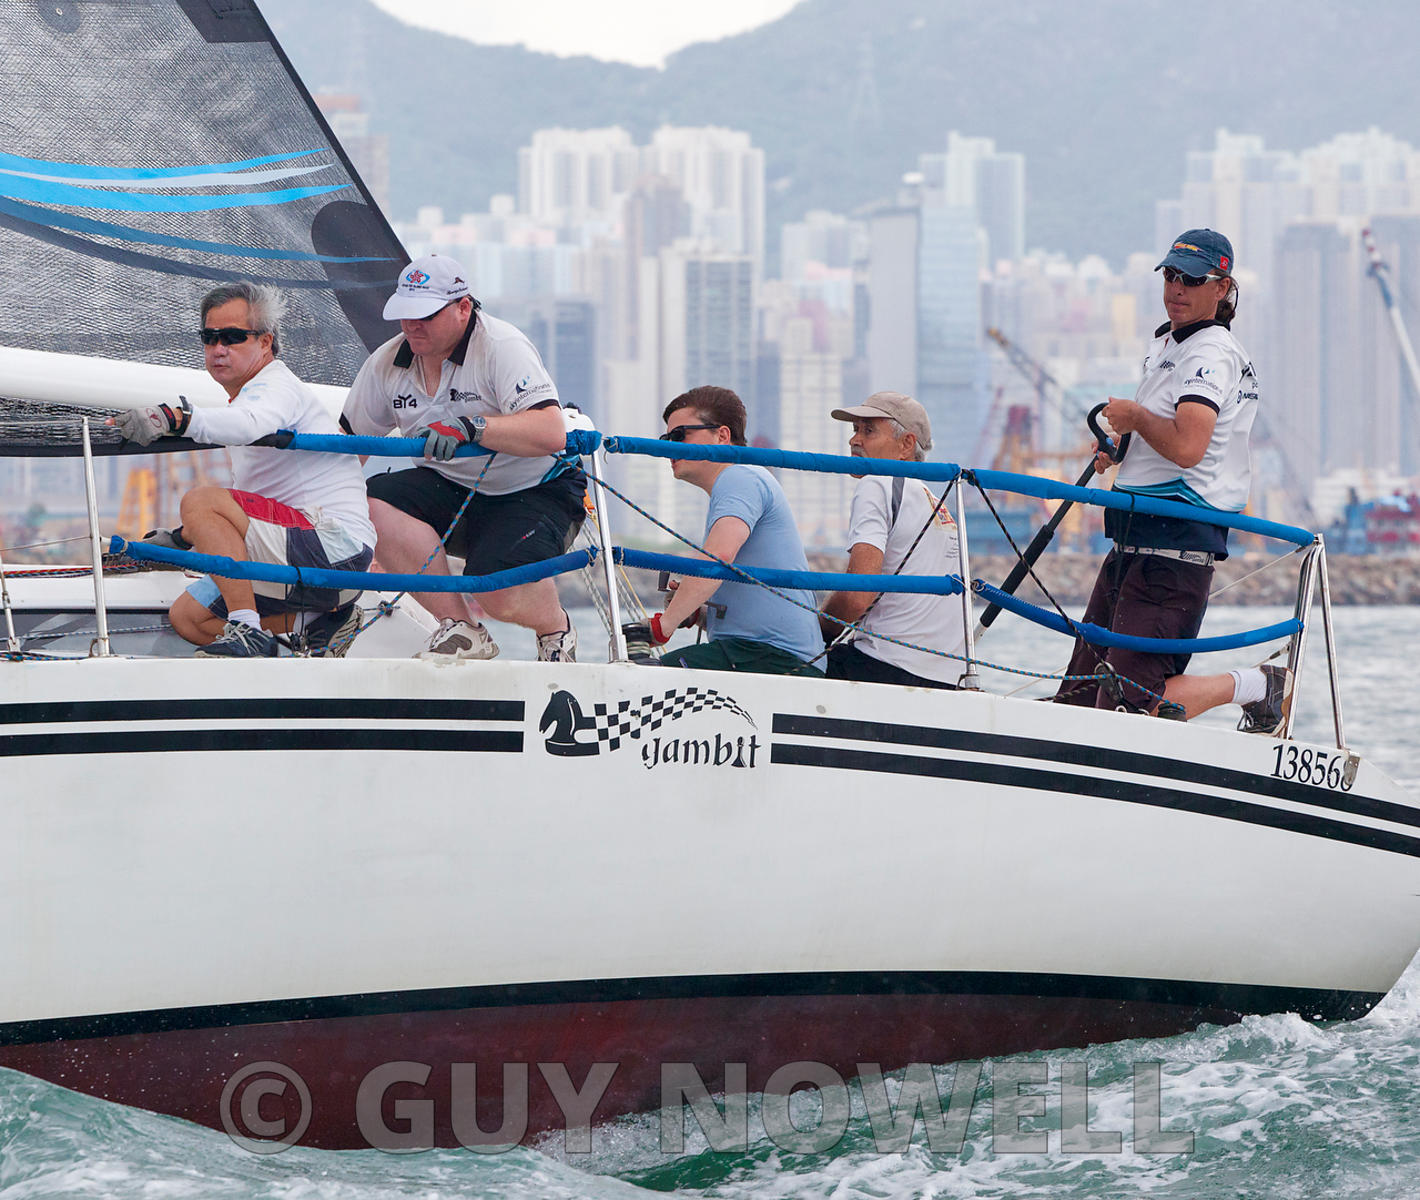 Edmond de Rothschild Spring Regatta 2015